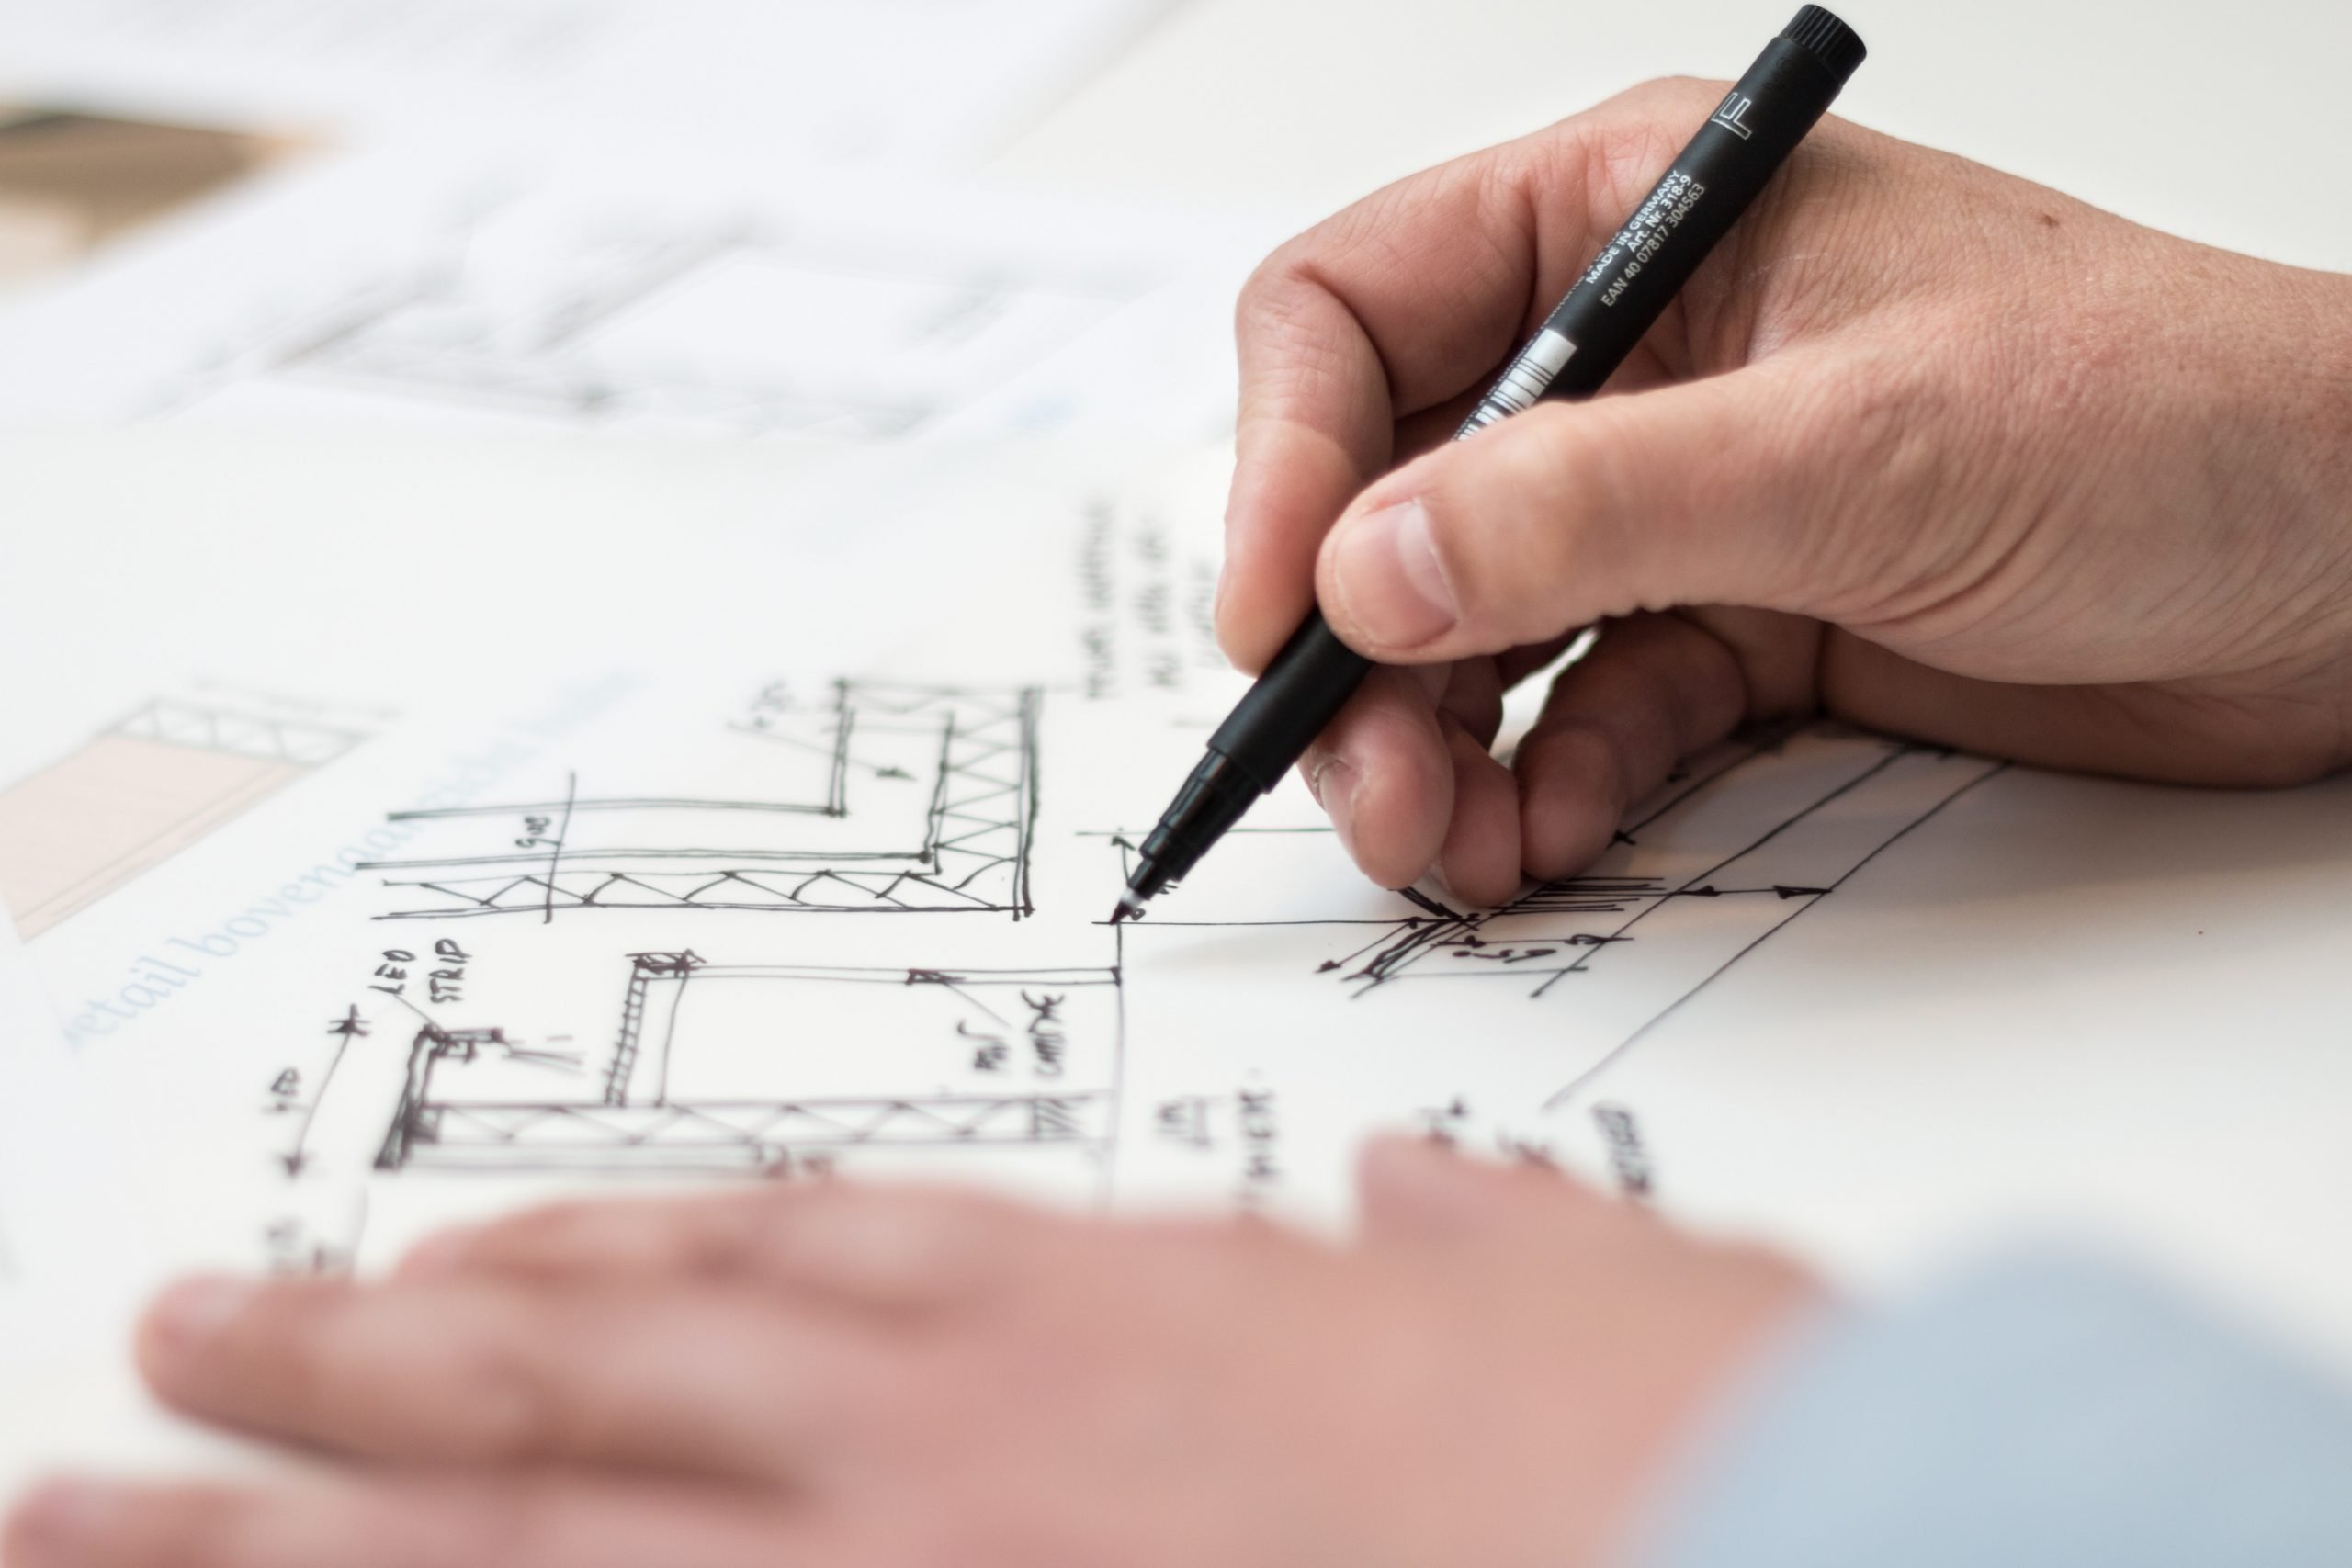 Read more about the article Insight on: Specification-led marketing and how to become the go-to brand for architects and specifiers